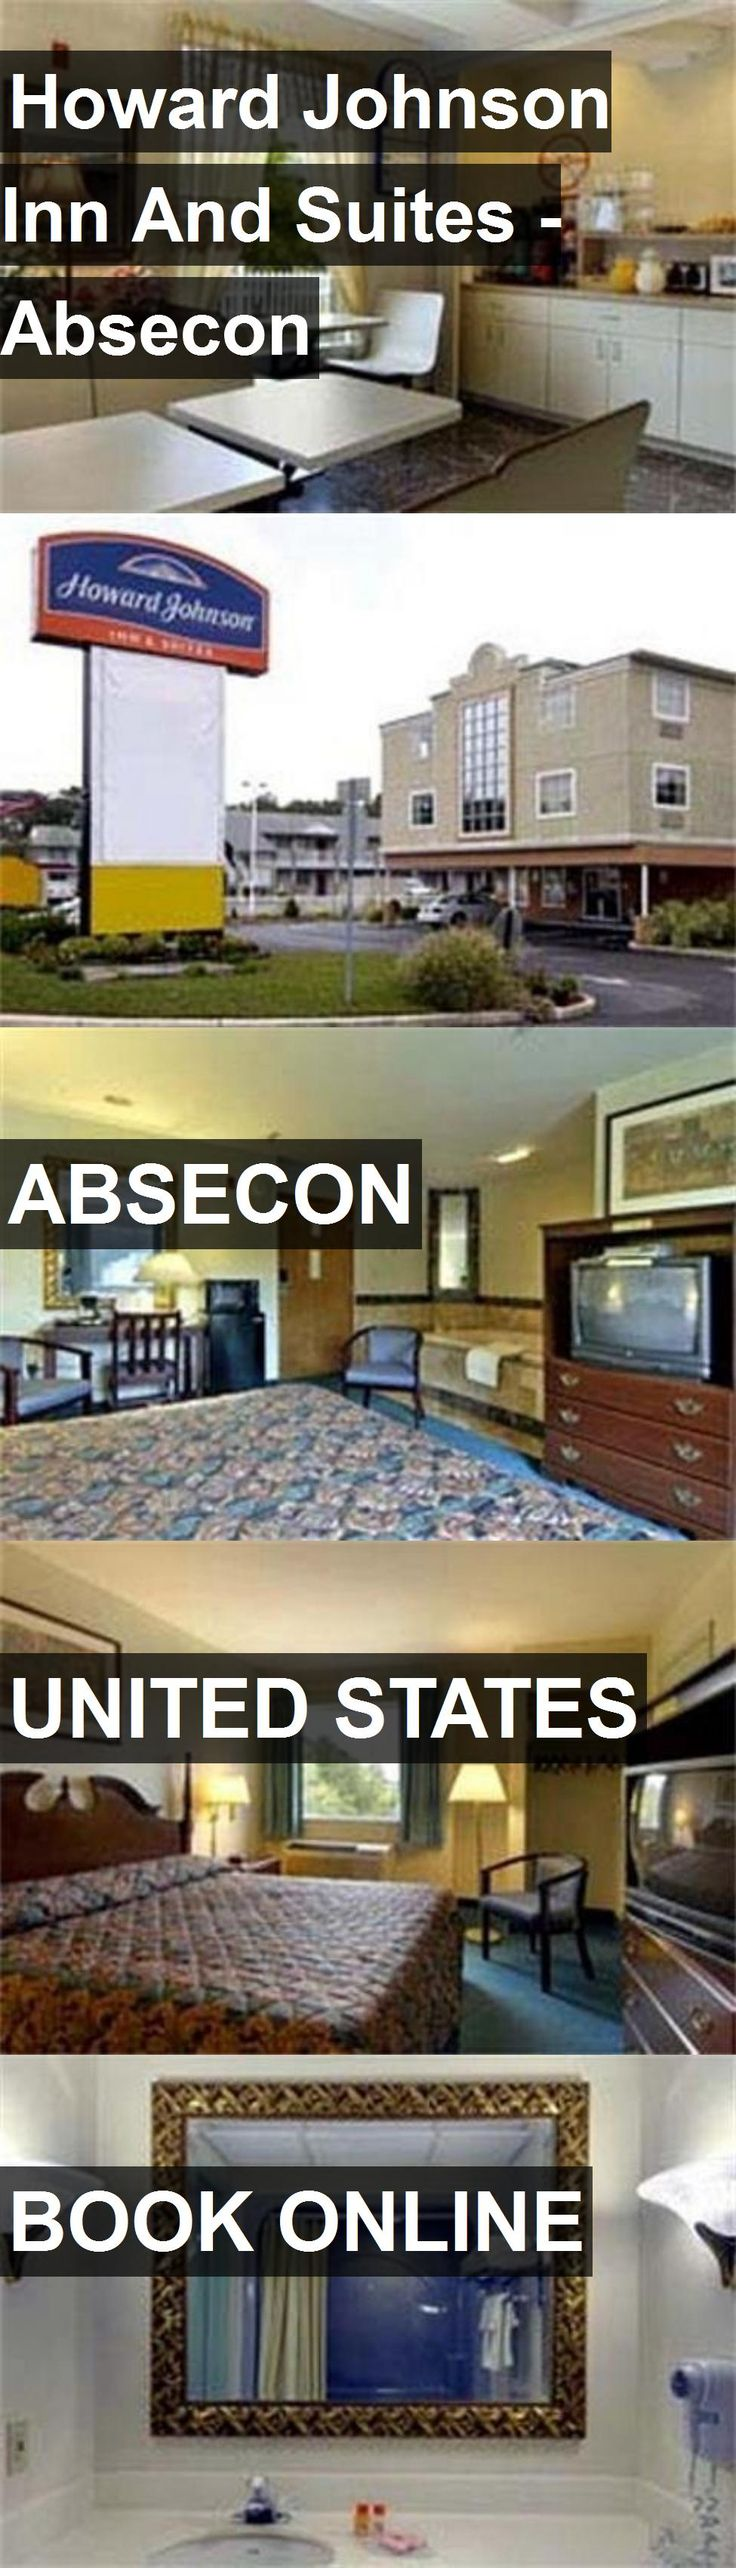 Hotel Howard Johnson Inn And Suites - Absecon in Absecon, United States. For more information, photos, reviews and best prices please follow the link. #UnitedStates #Absecon #travel #vacation #hotel